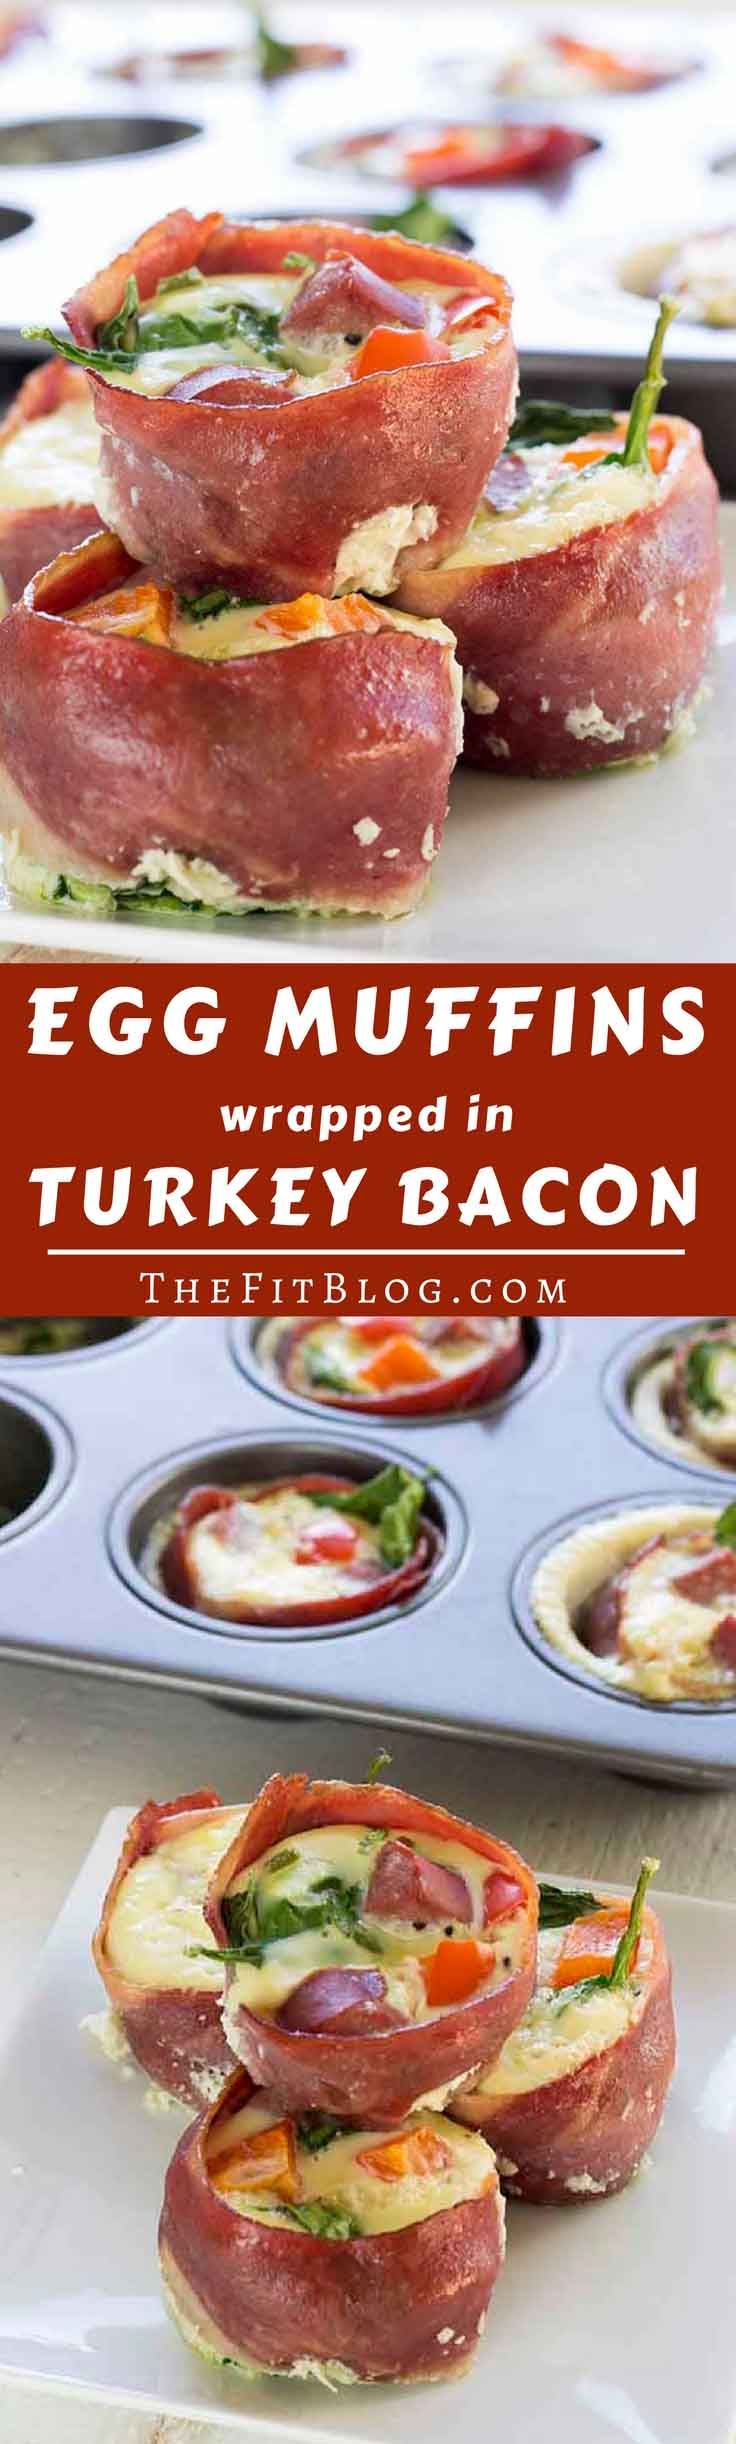 Healthy Egg Muffins With Lean Turkey Bacon - These healthy egg muffins take hardly any effort to make, taste amazing, and can be stored and reheated the next day. What more could you wish for in a recipe? (low carb, high protein, paleo, gluten free, diabetes friendly)